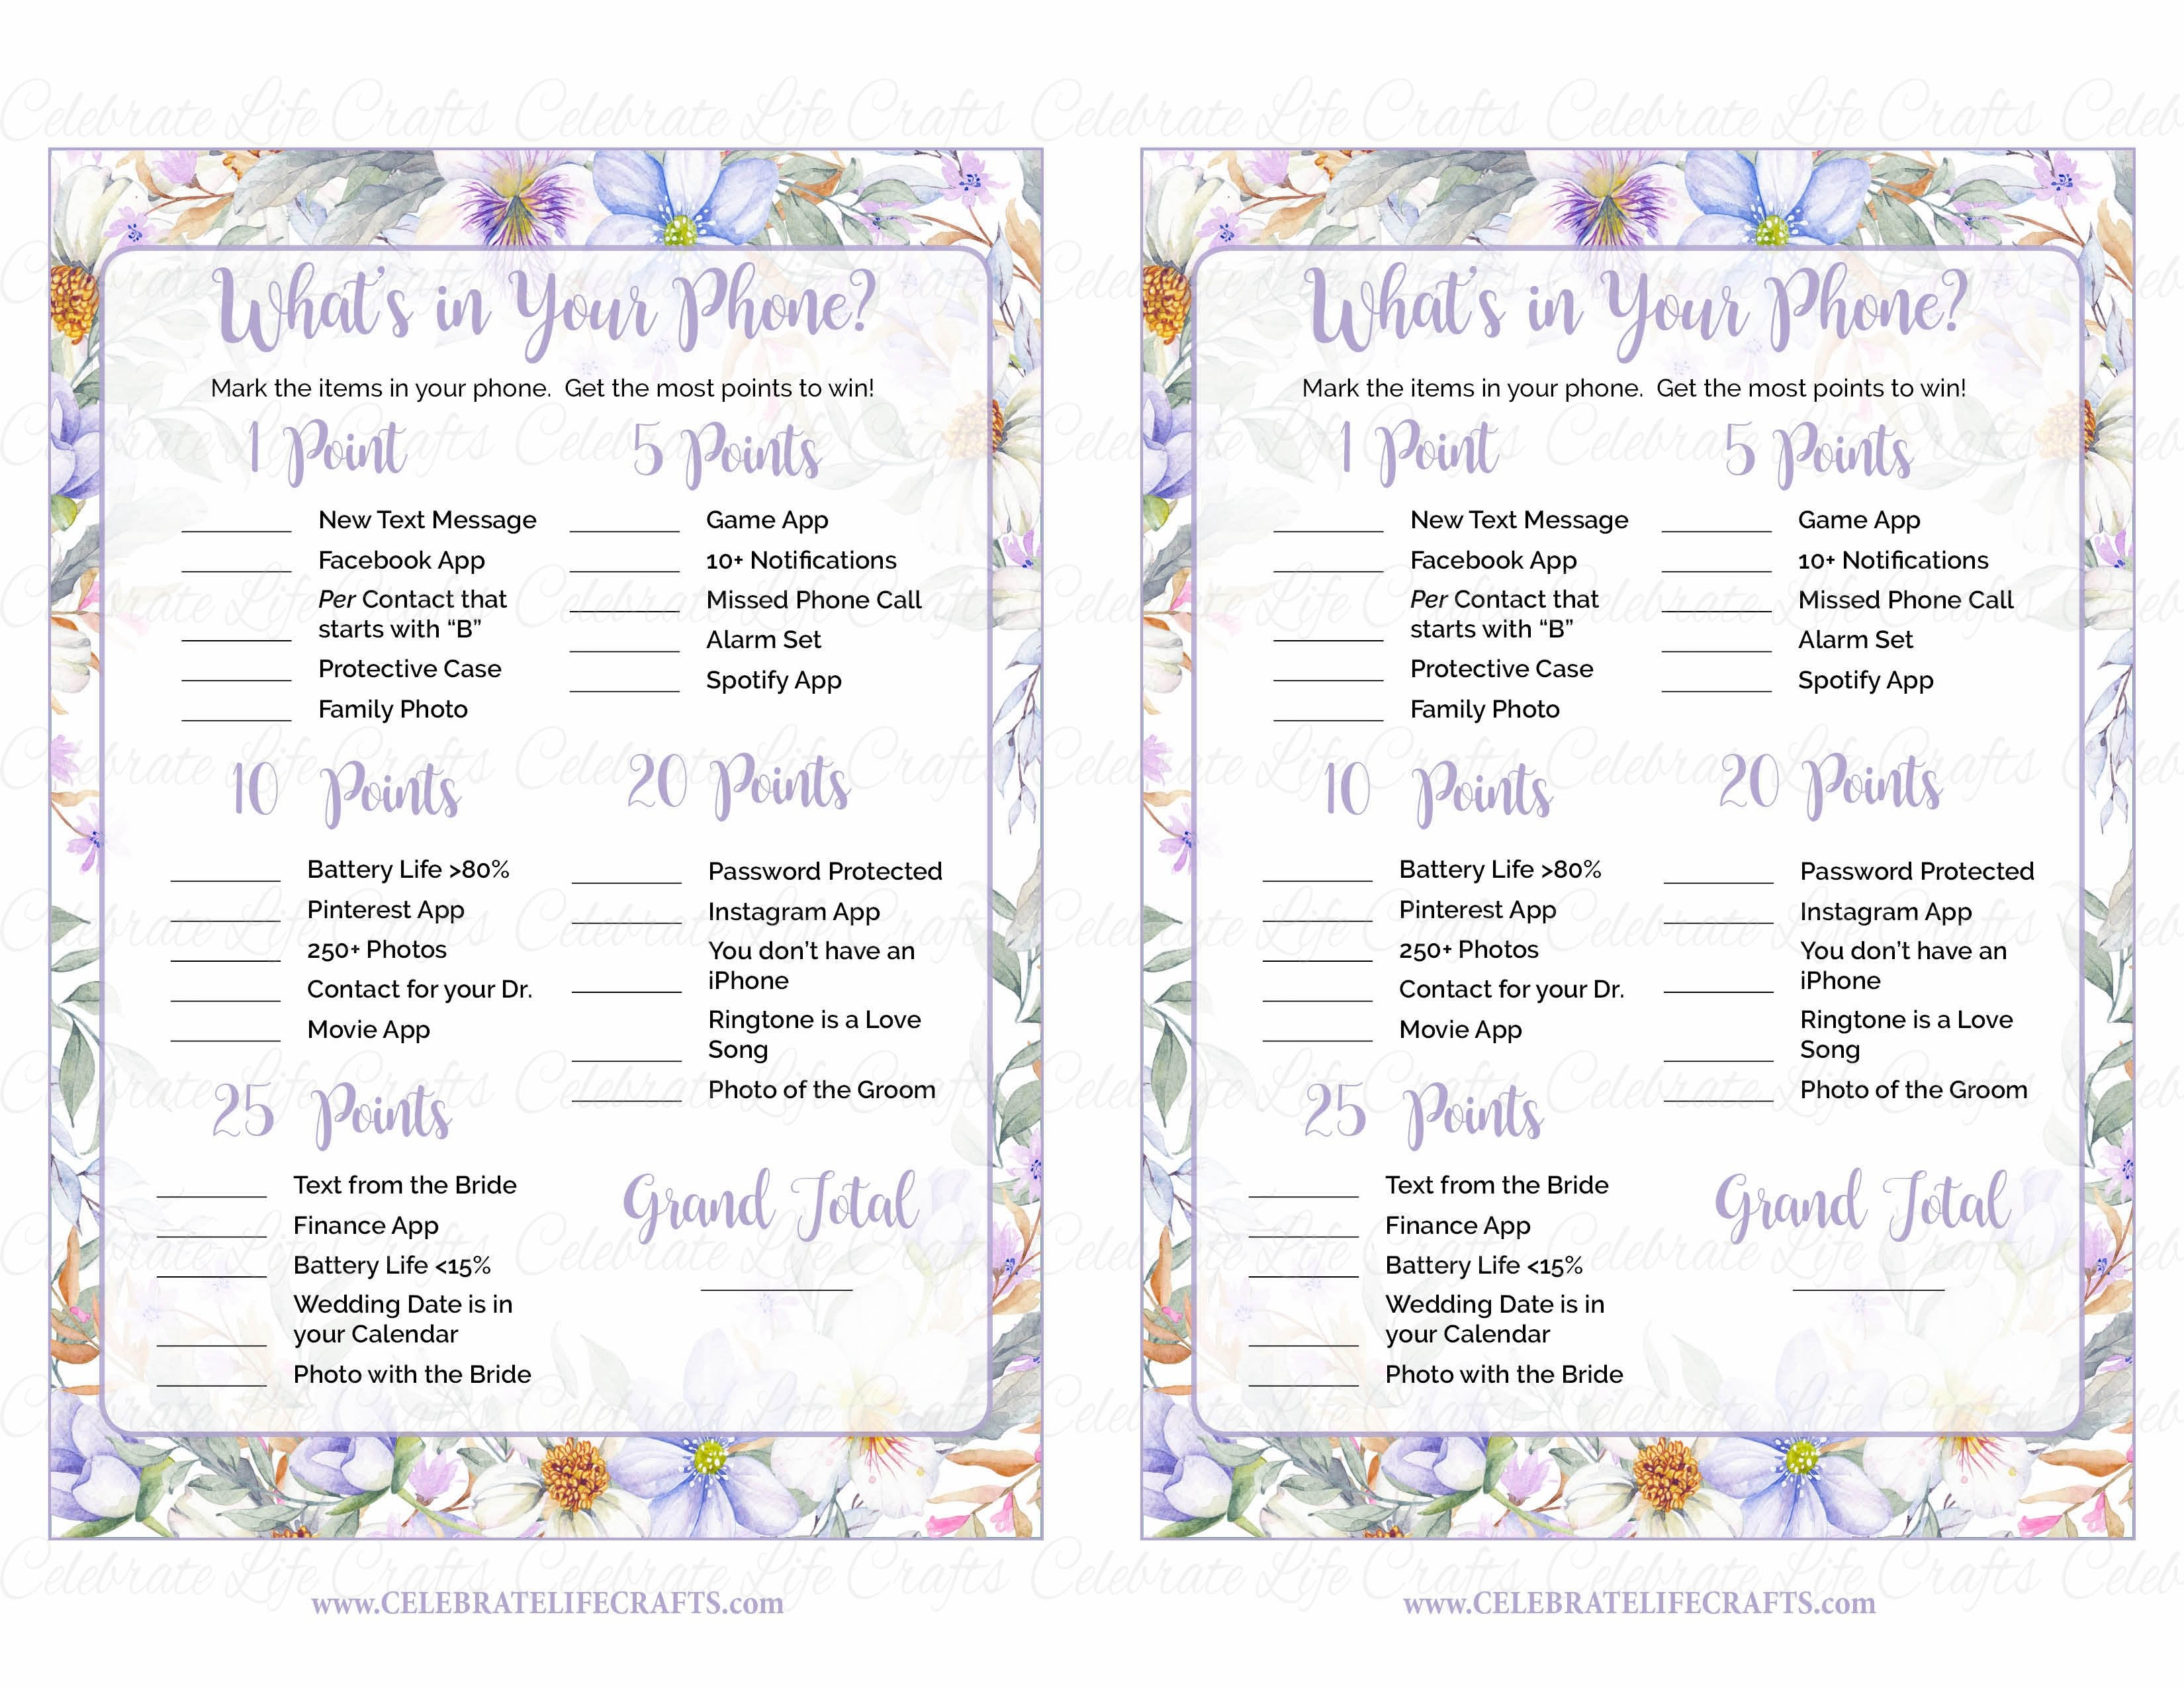 picture regarding What's in Your Phone Game Free Printable called Whats inside of Your Cellphone Bridal Shower Activity - PRINTABLE Obtain - Crimson Floral Marriage Shower - BR1005